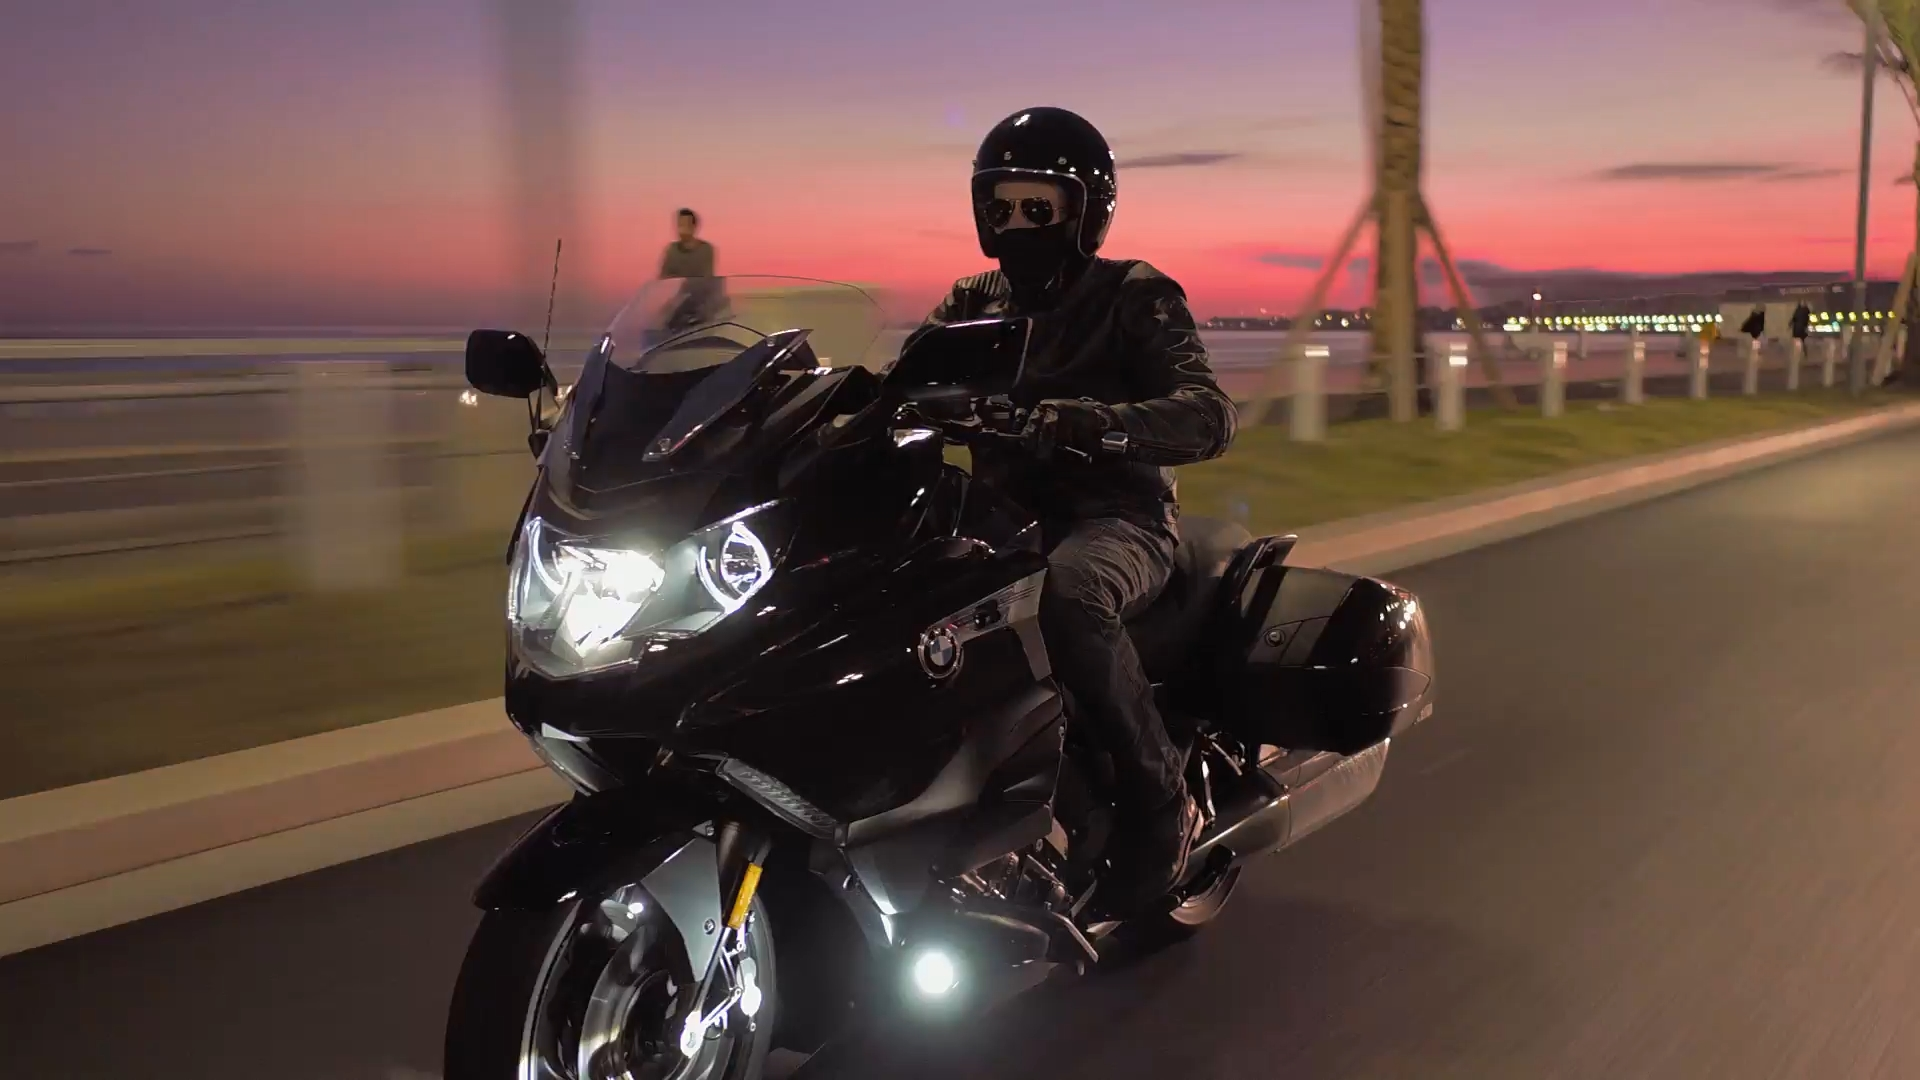 The new BMW K 1600 B